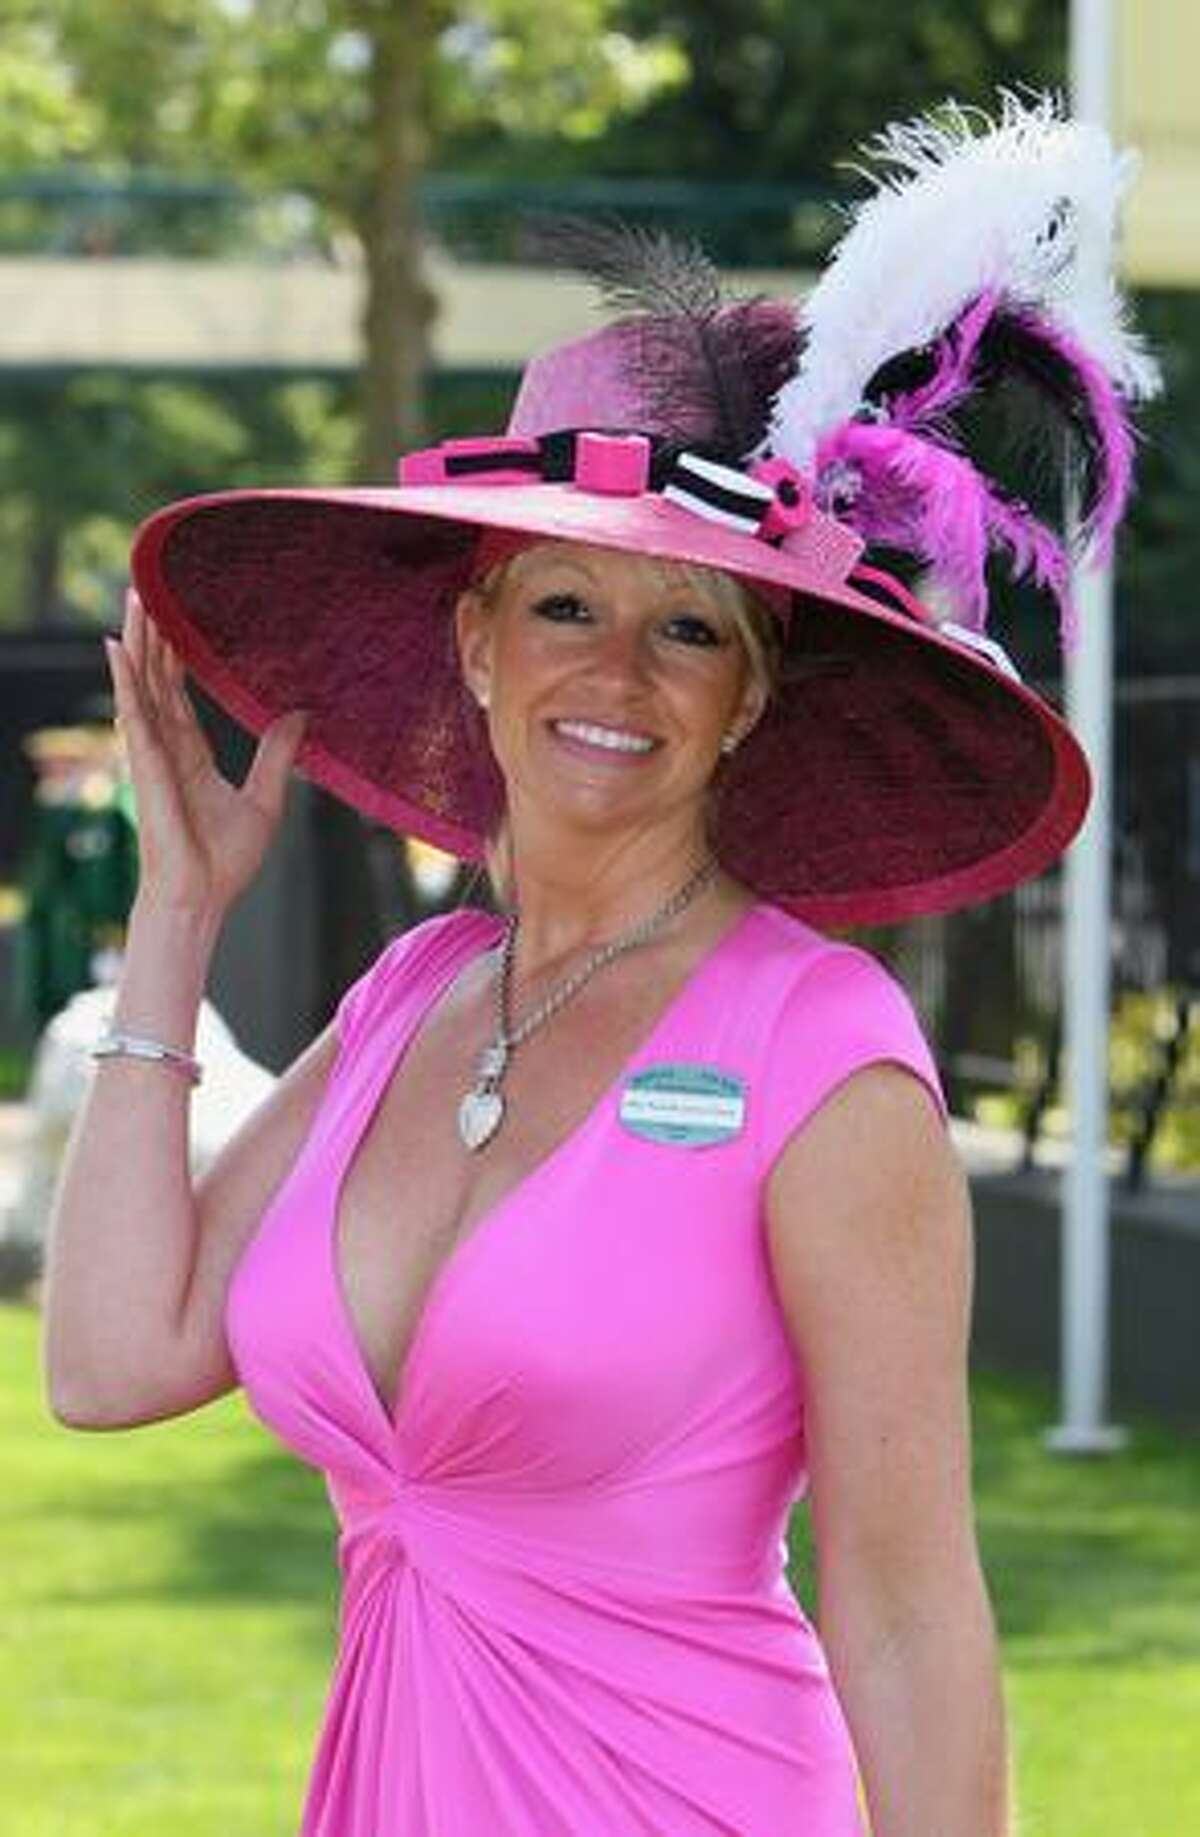 Daniella James-Fancy poses wearing a liquorice allsort themed hat as she arrives on the first day of Royal Ascot 2009 at Ascot Racecourse in Ascot, England.